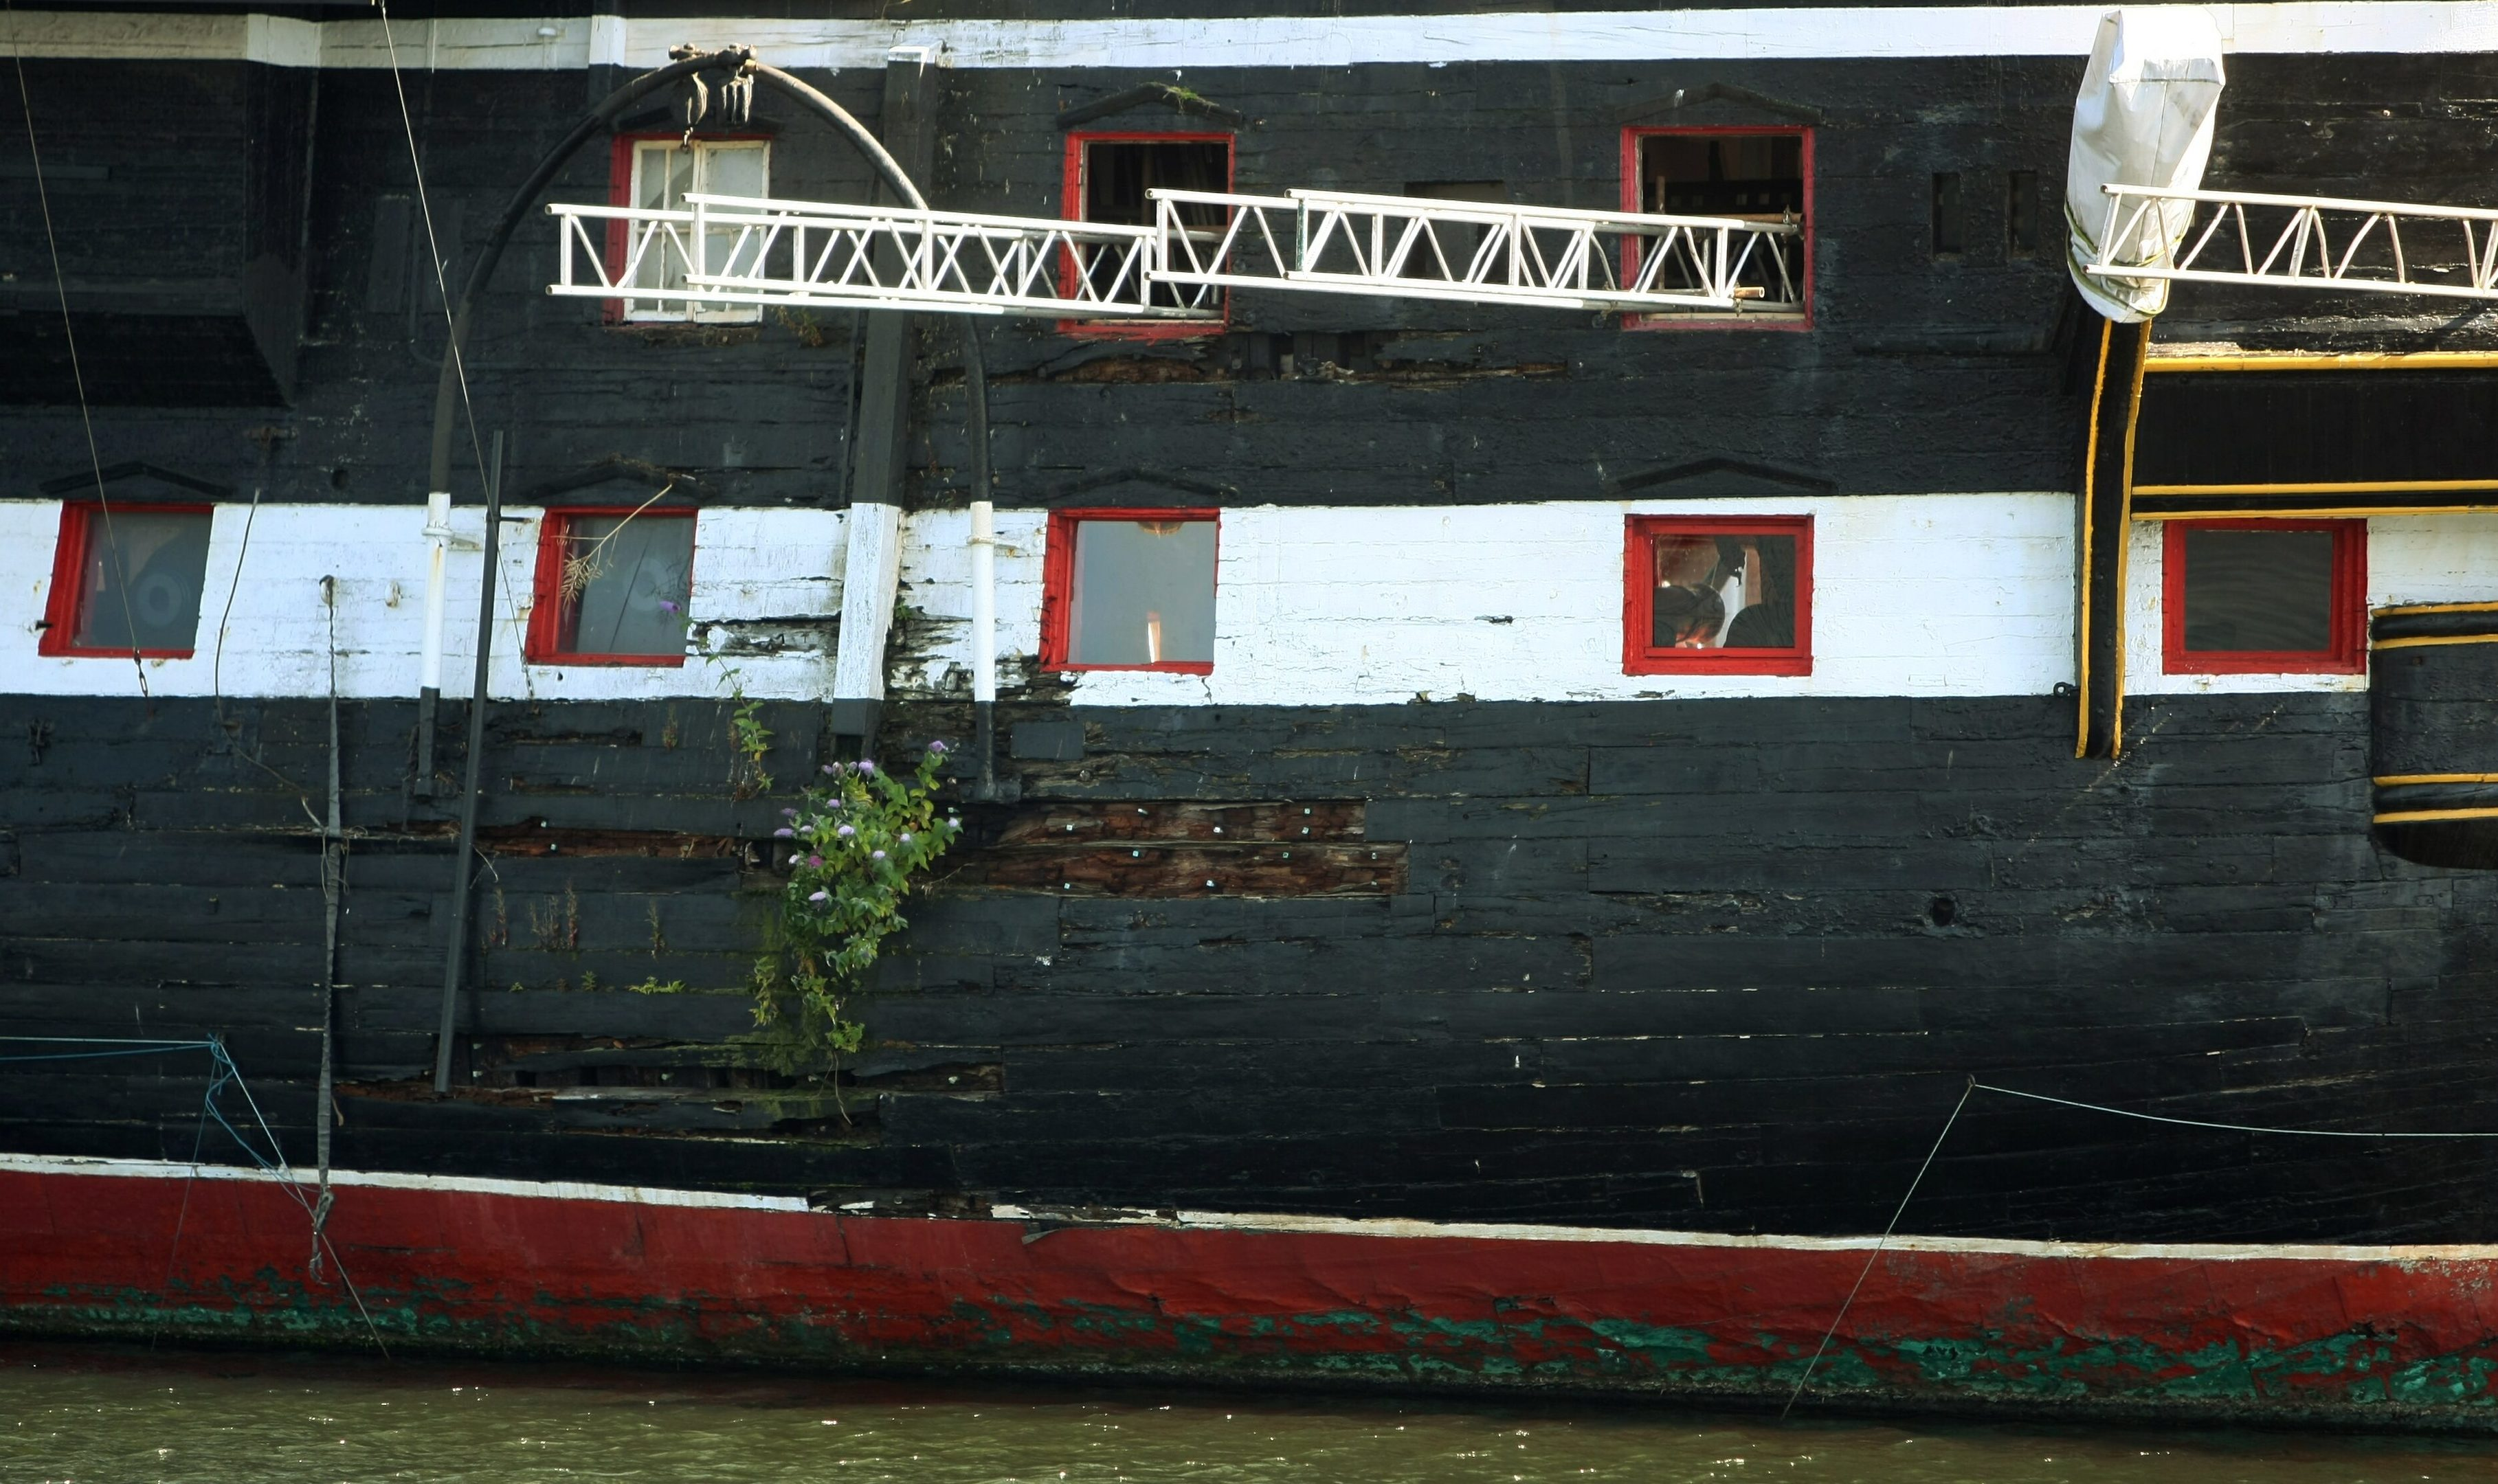 The side of the ship has suffered some weather damage.